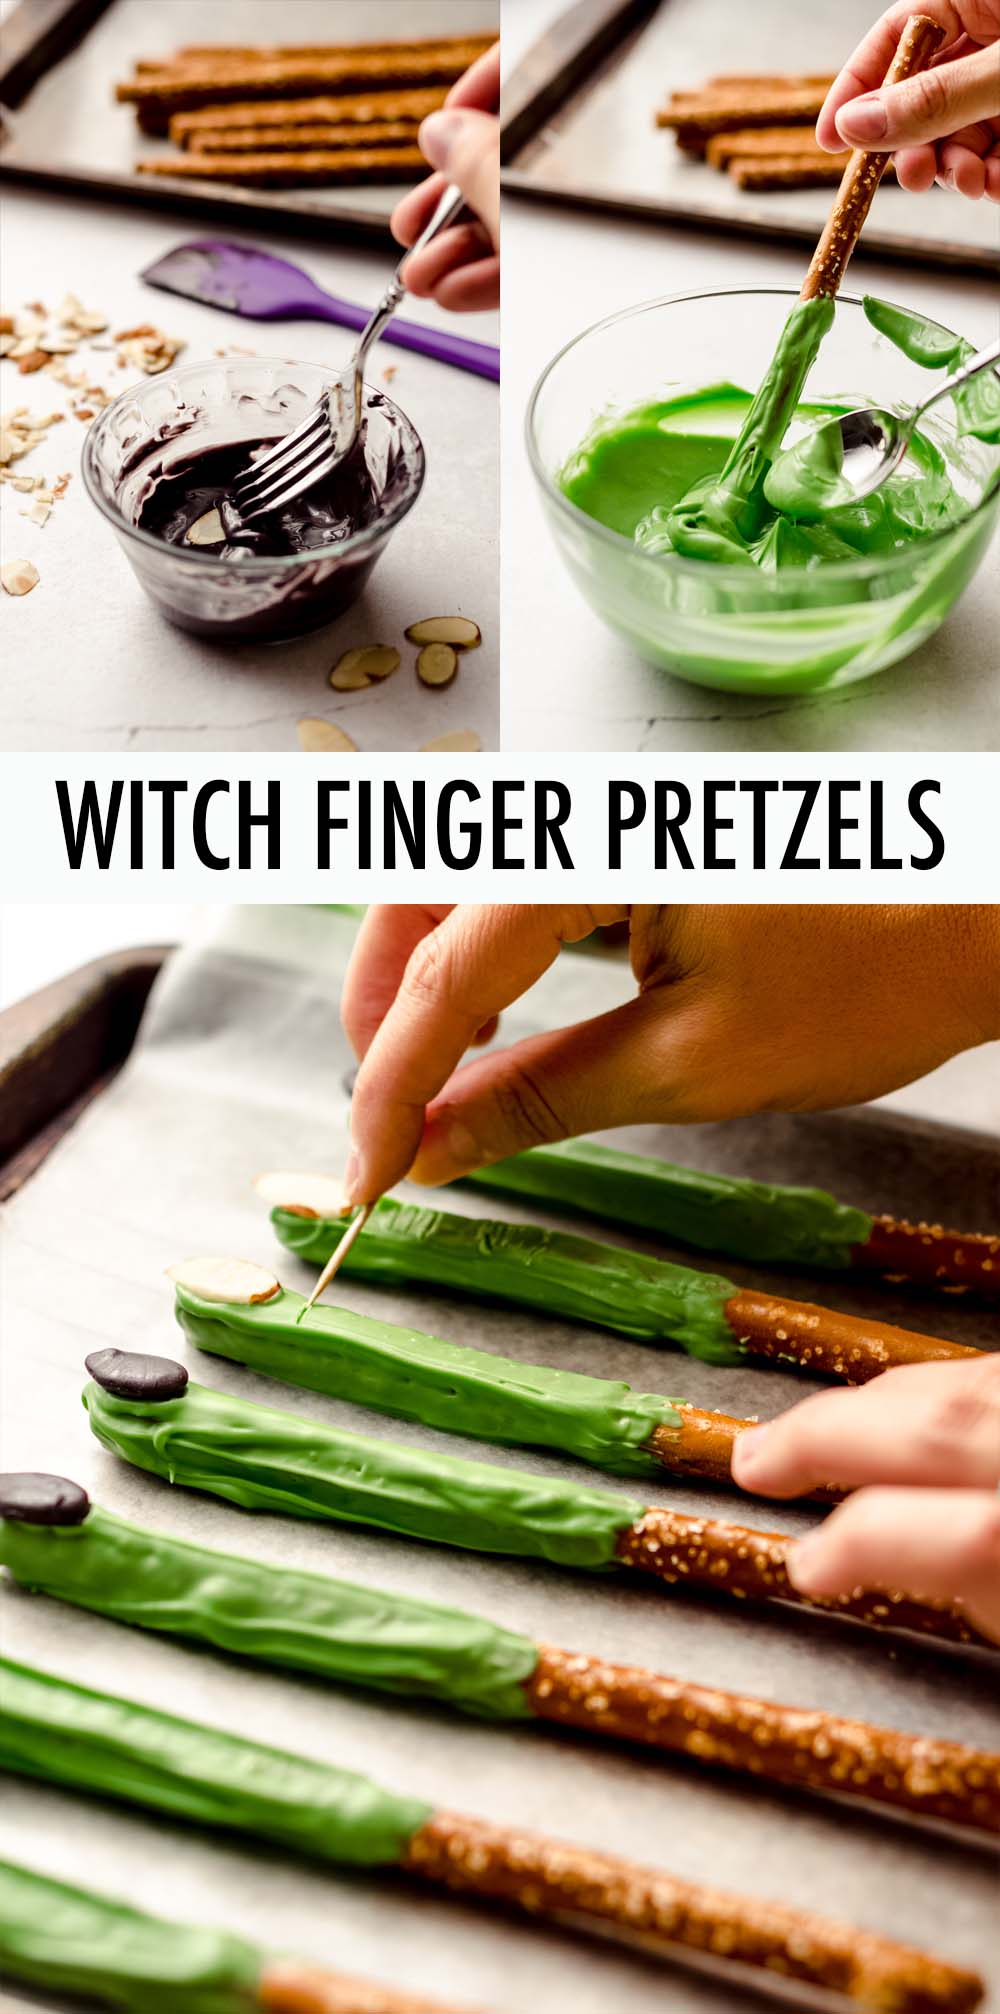 A simple and charming no-bake Halloween treat that looks like witches' fingers and is fun for kids to both make and eat. Great for Halloween goodie bags or a party spread.